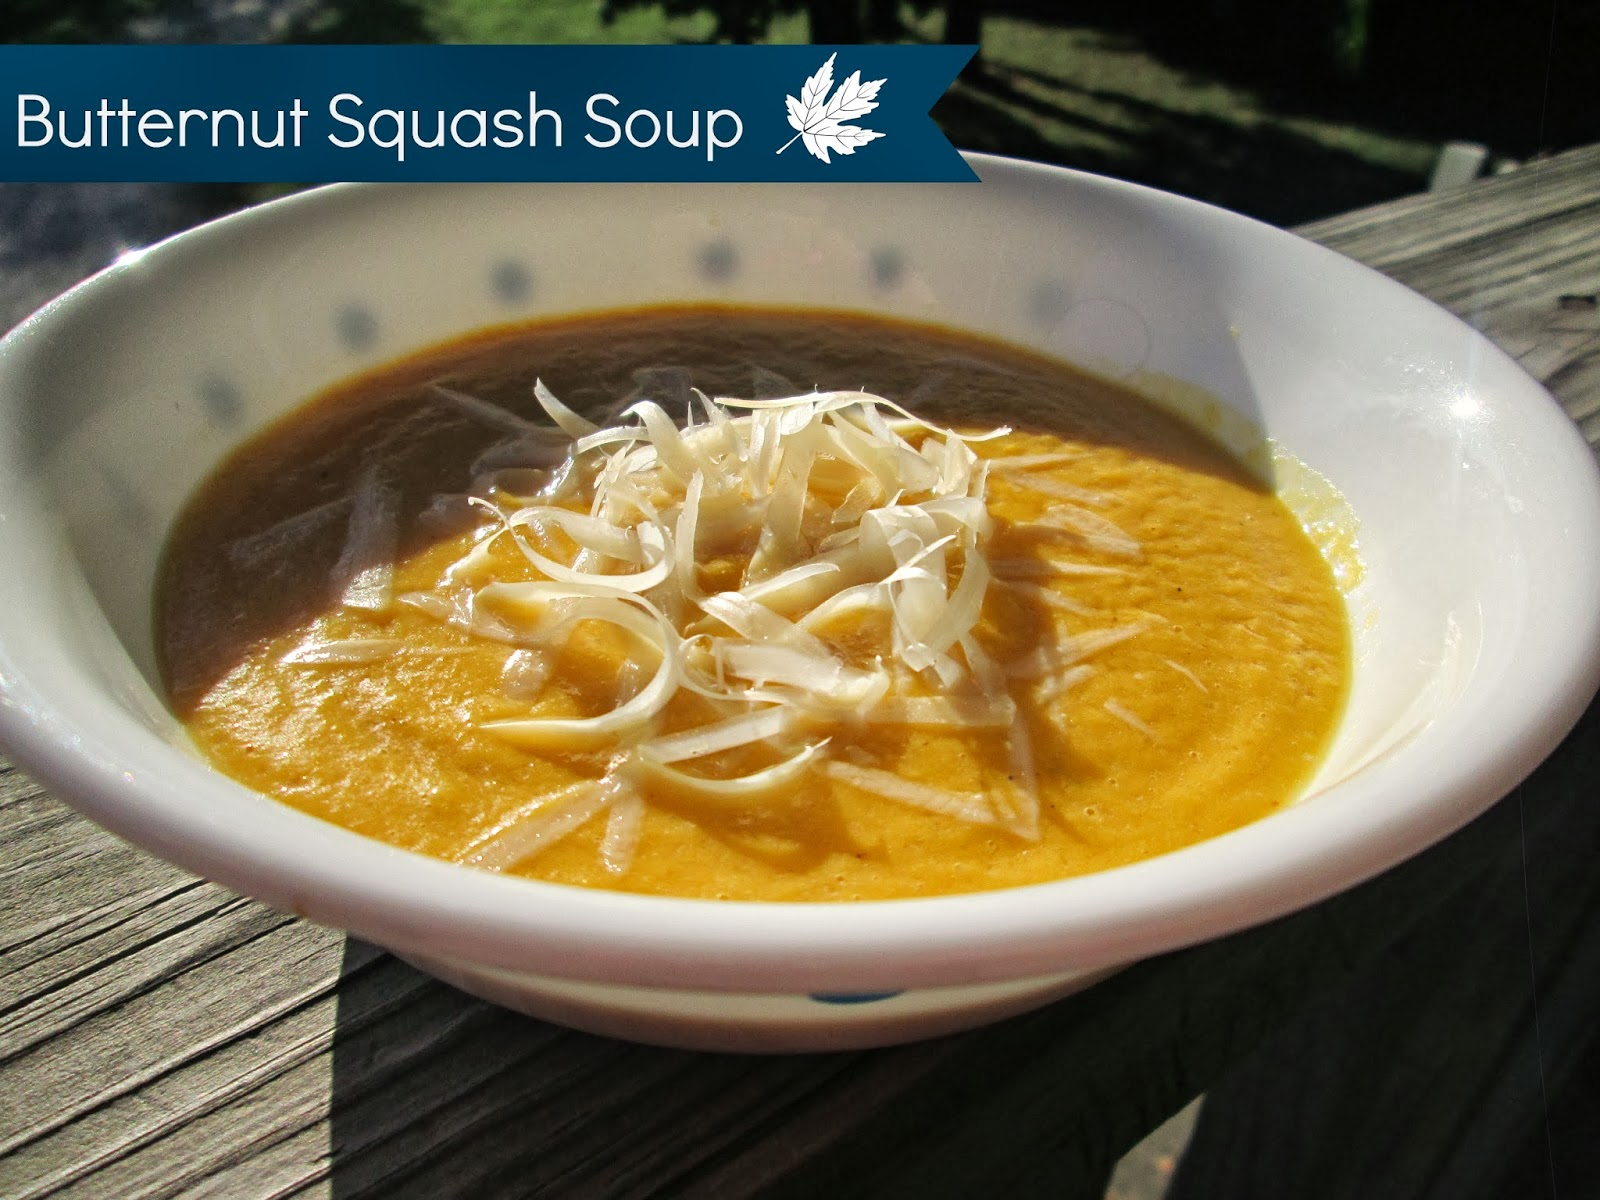 THE REHOMESTEADERS: Butternut Squash Soup